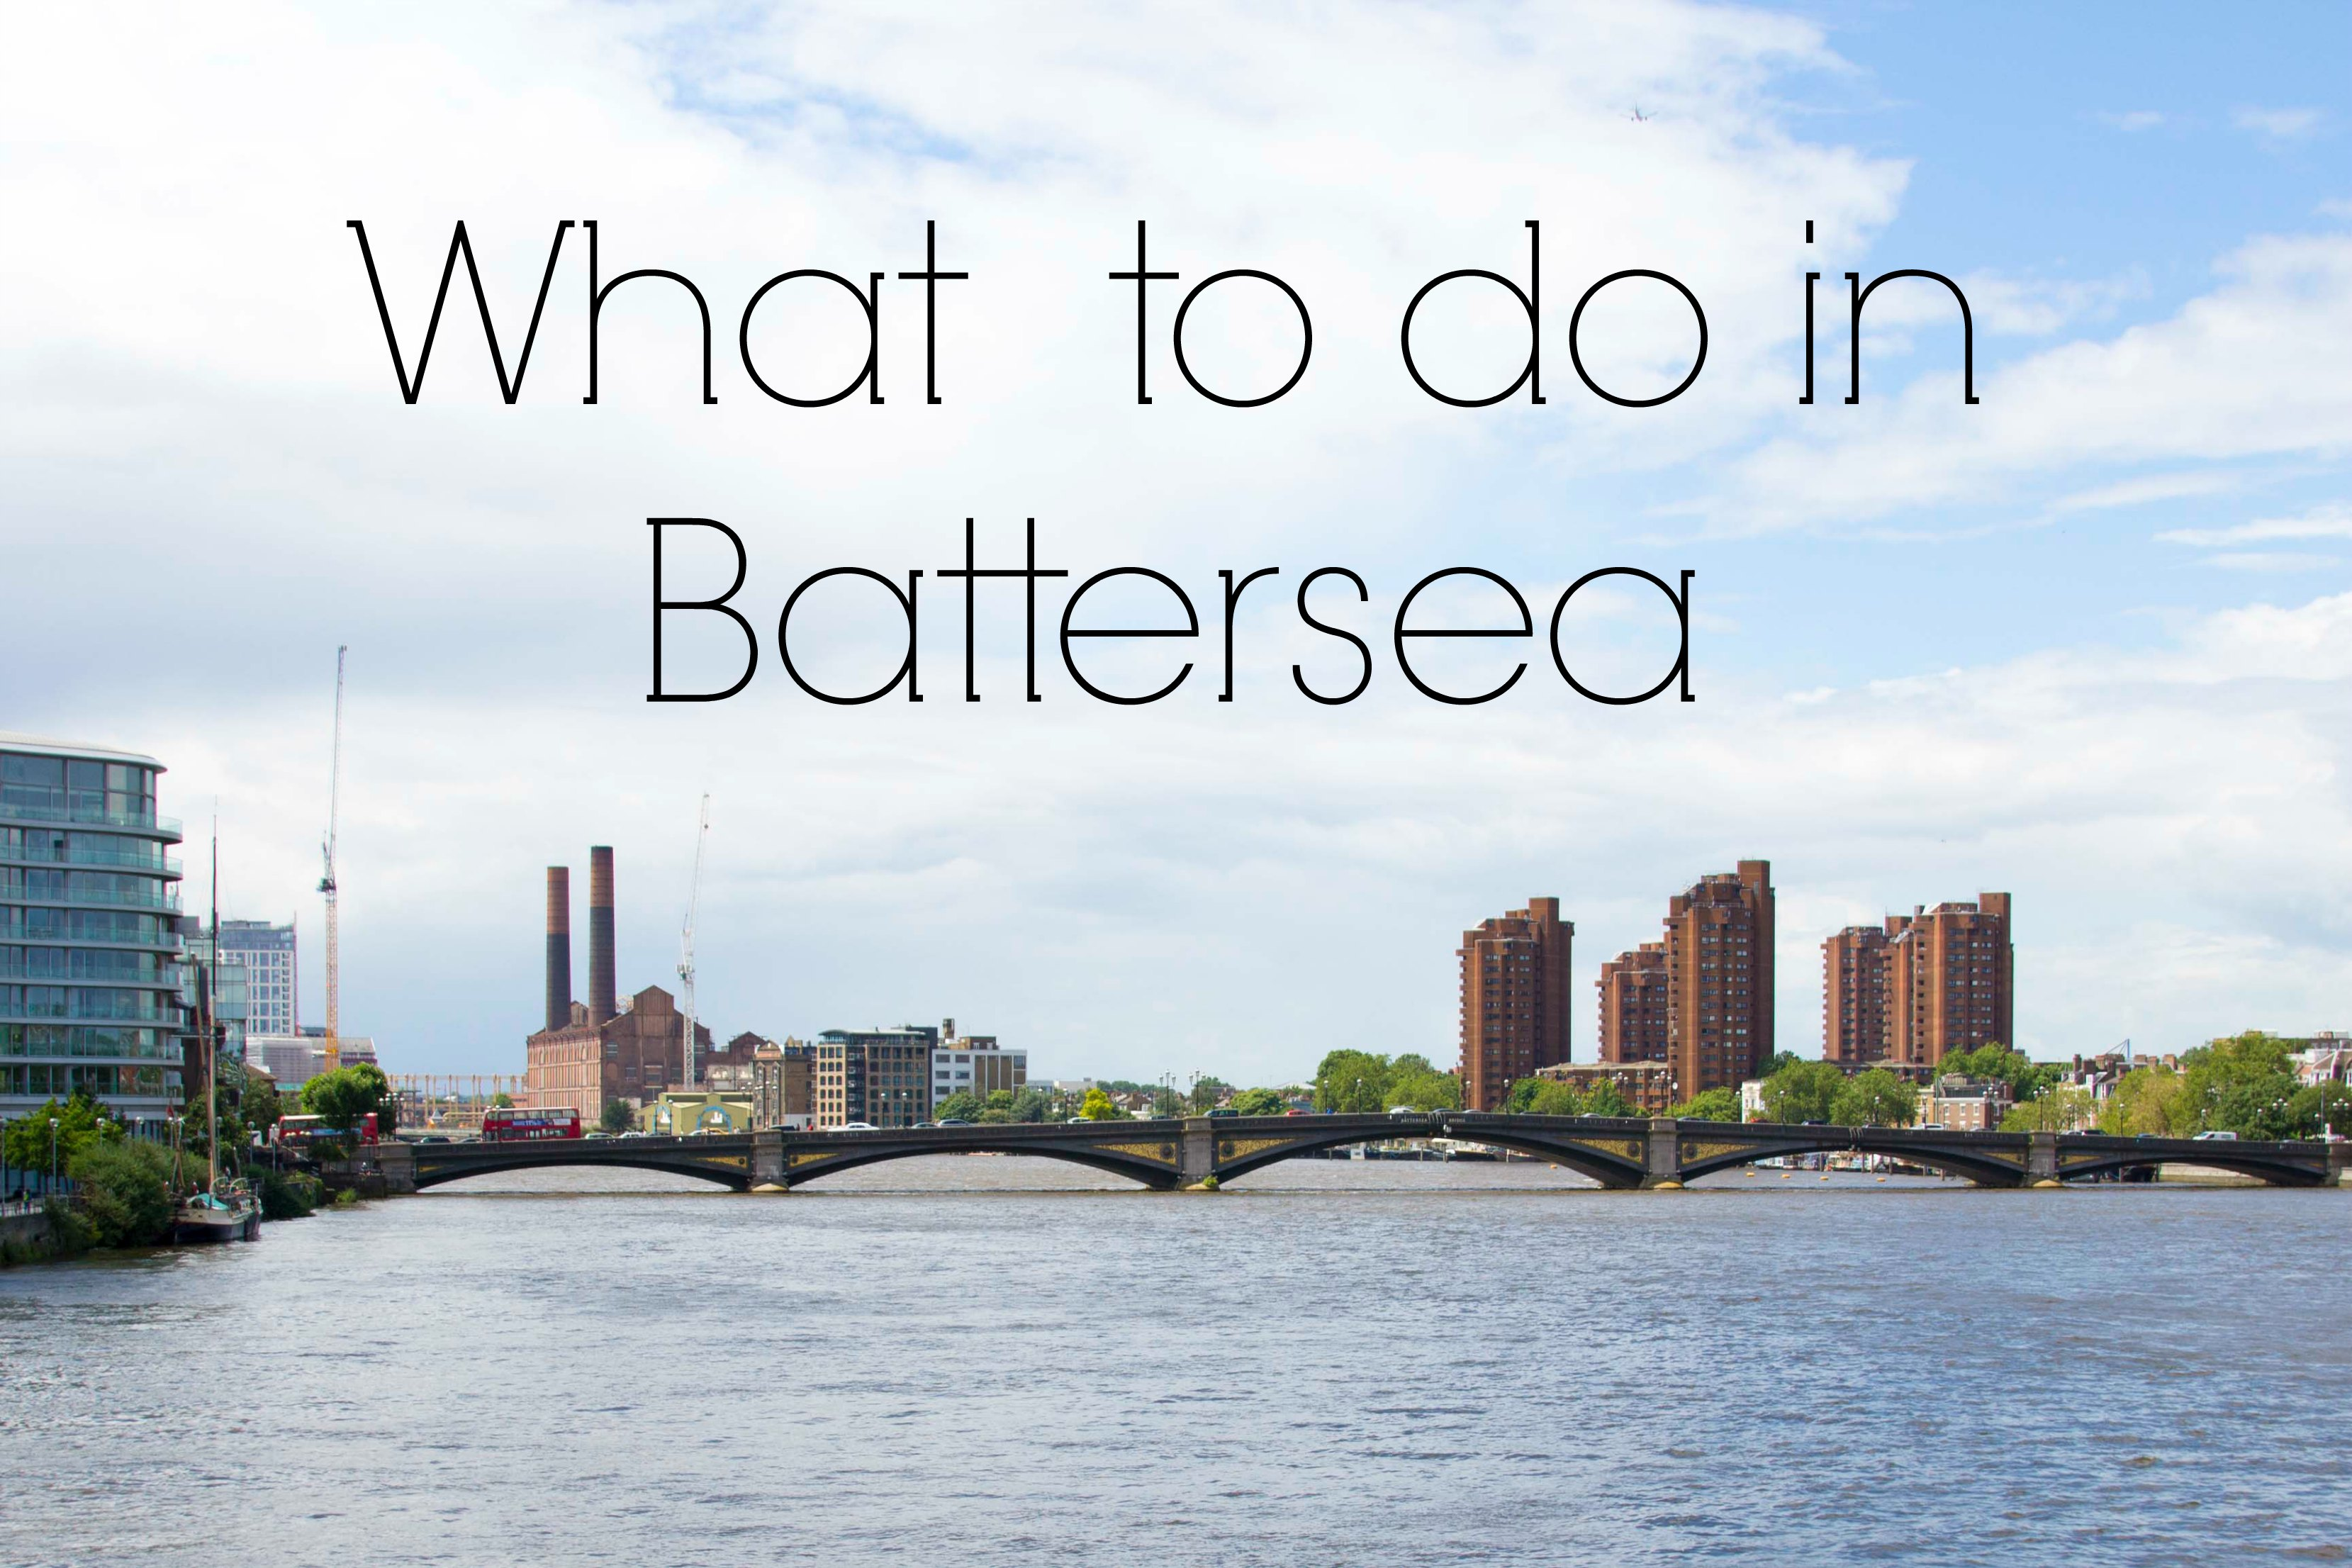 What to do in Battersea